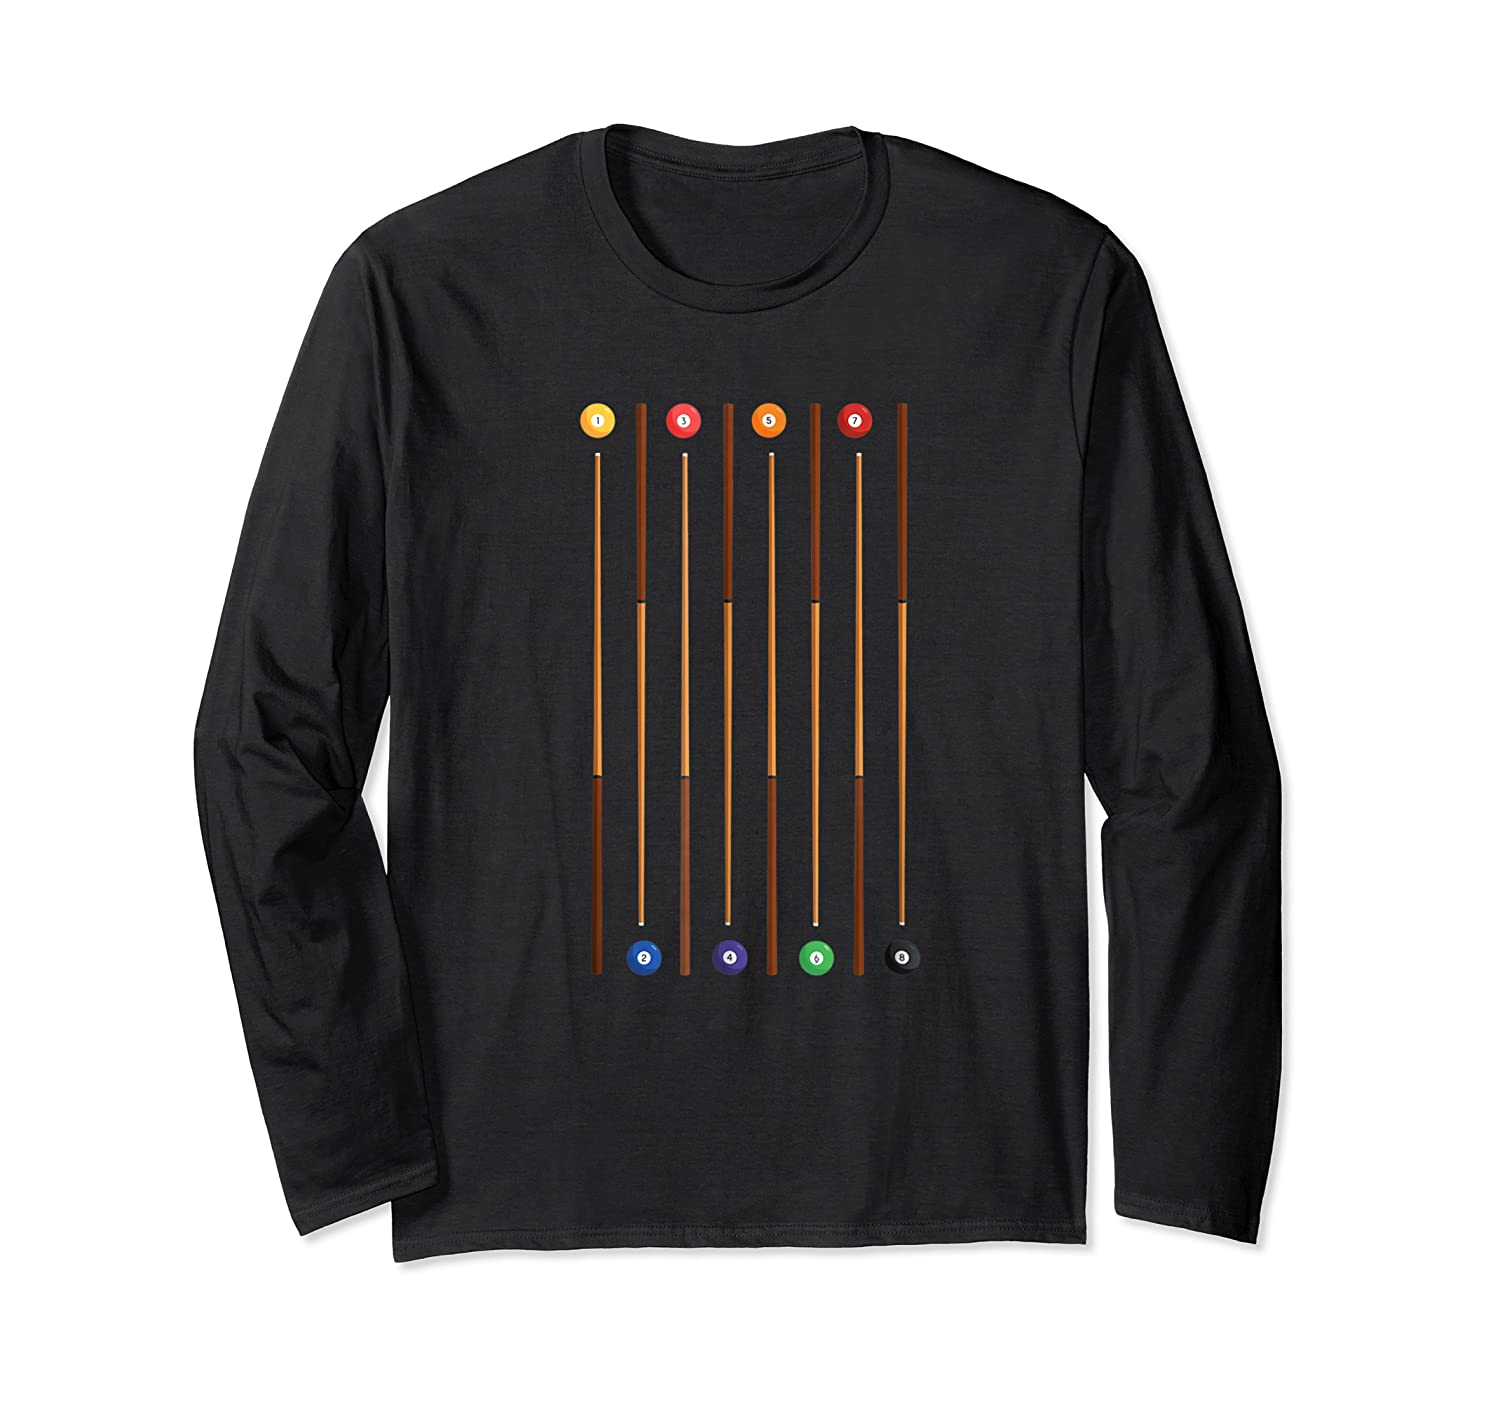 Biliard Cue Stick And 8 Pool Balls Awesome Game Shirts Long Sleeve T-shirt